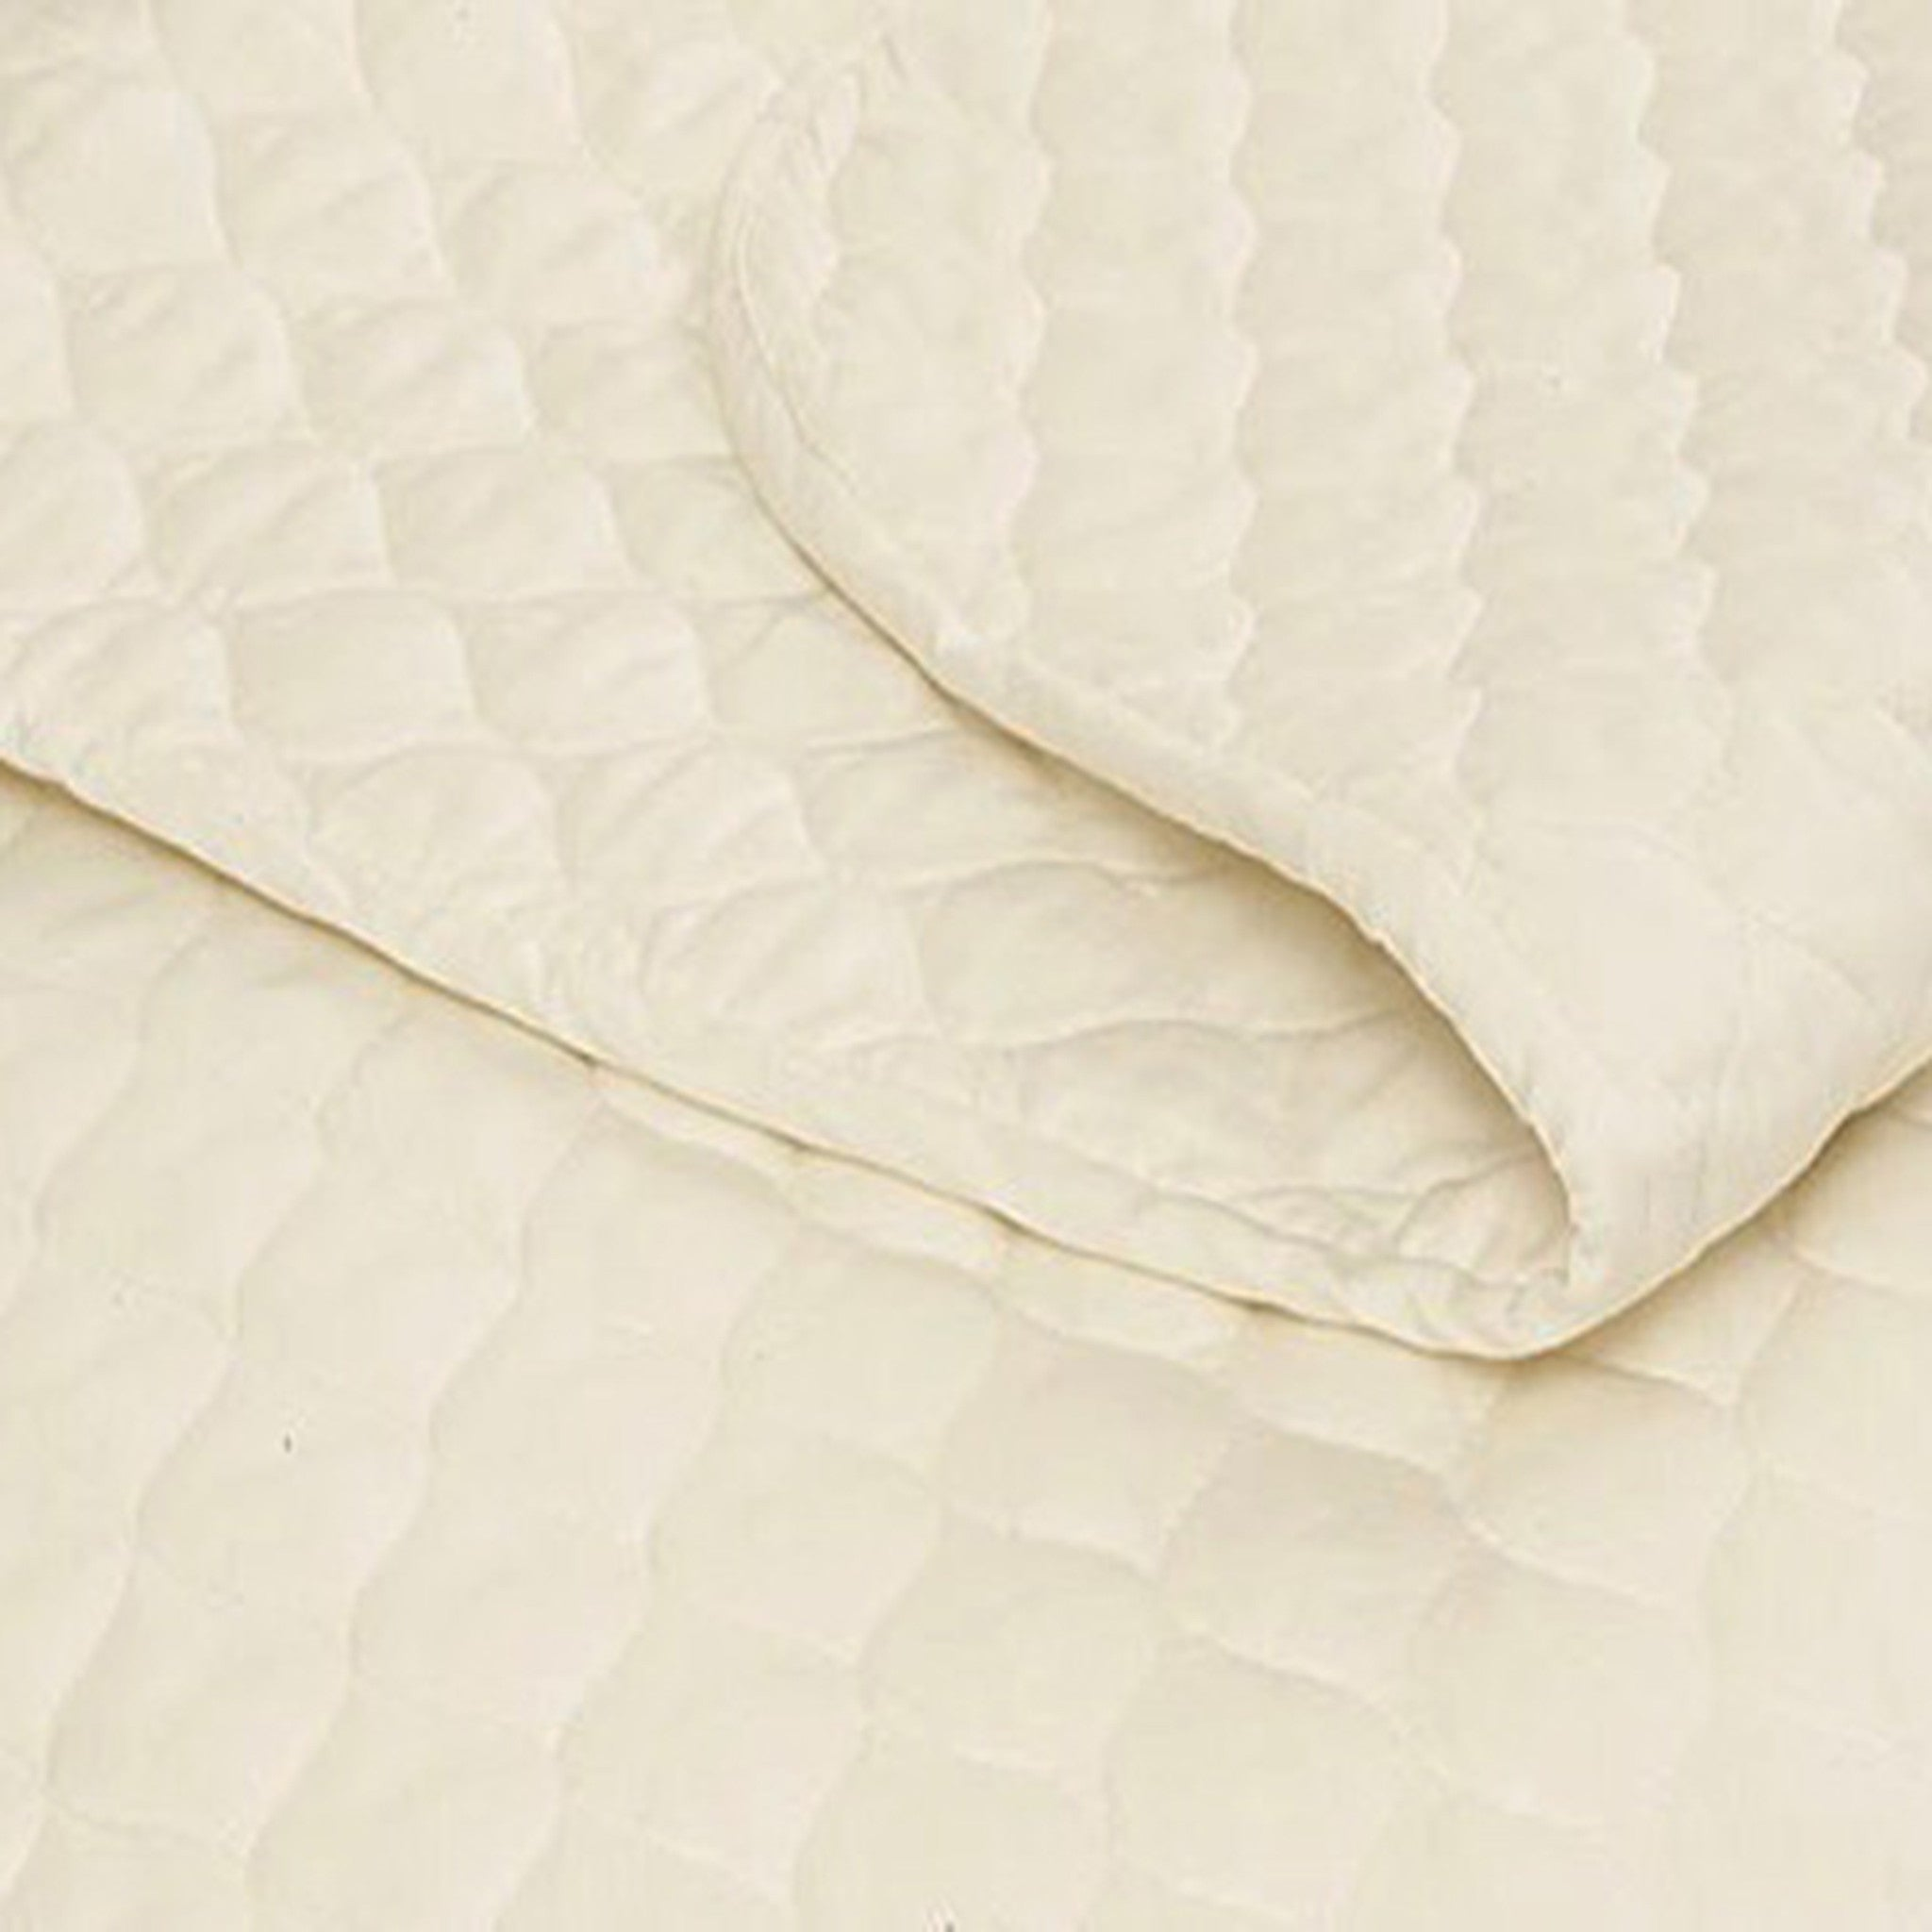 certified organic cotton mattress pad myorganicsleep - Organic Cotton Mattress